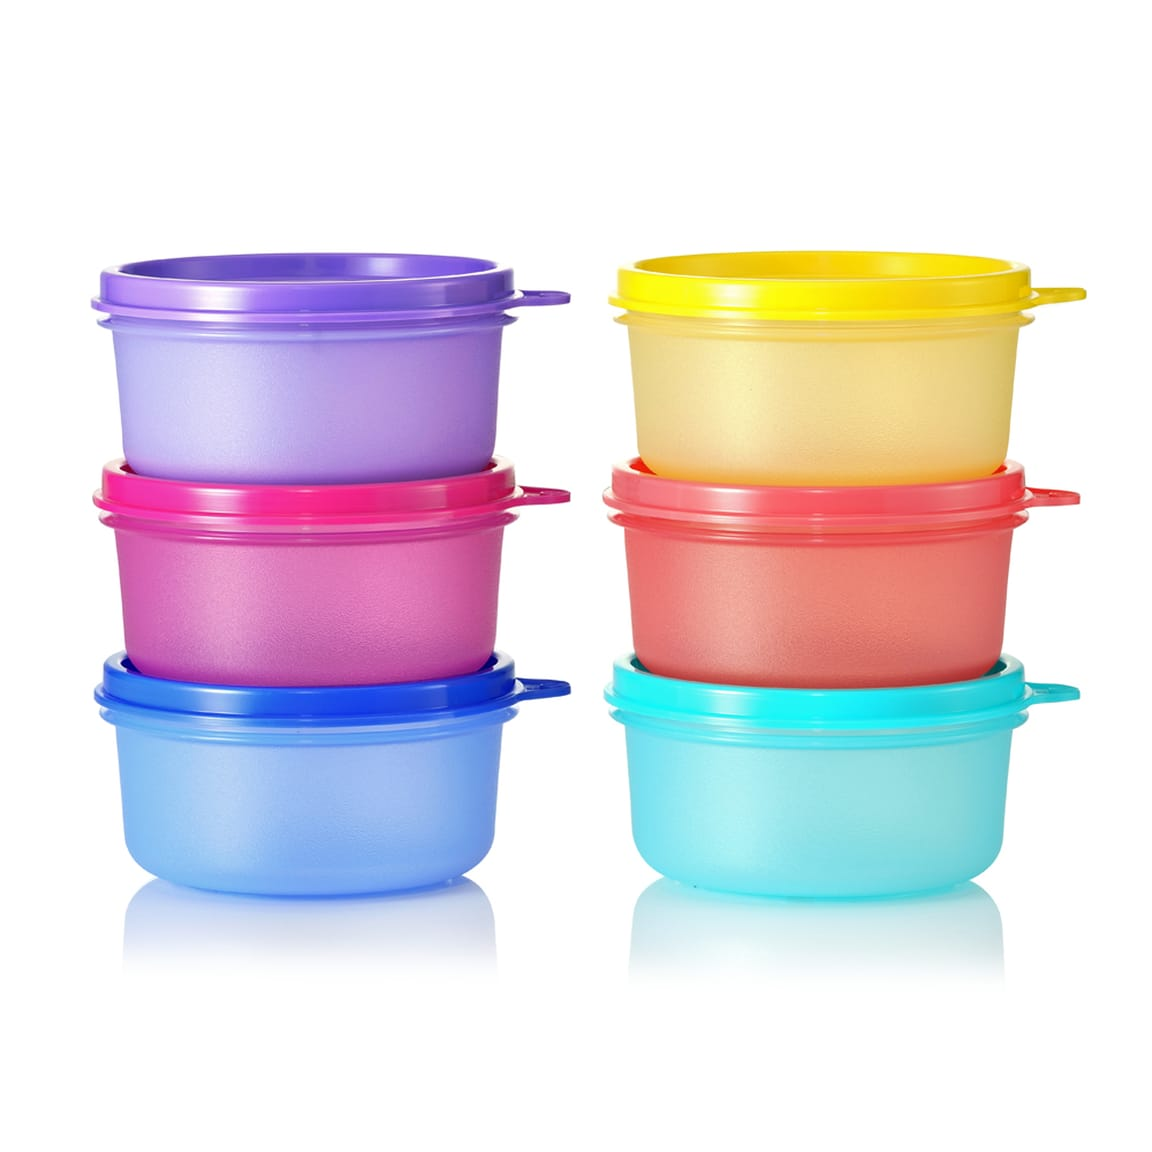 Small Roung Container (6) 200ml